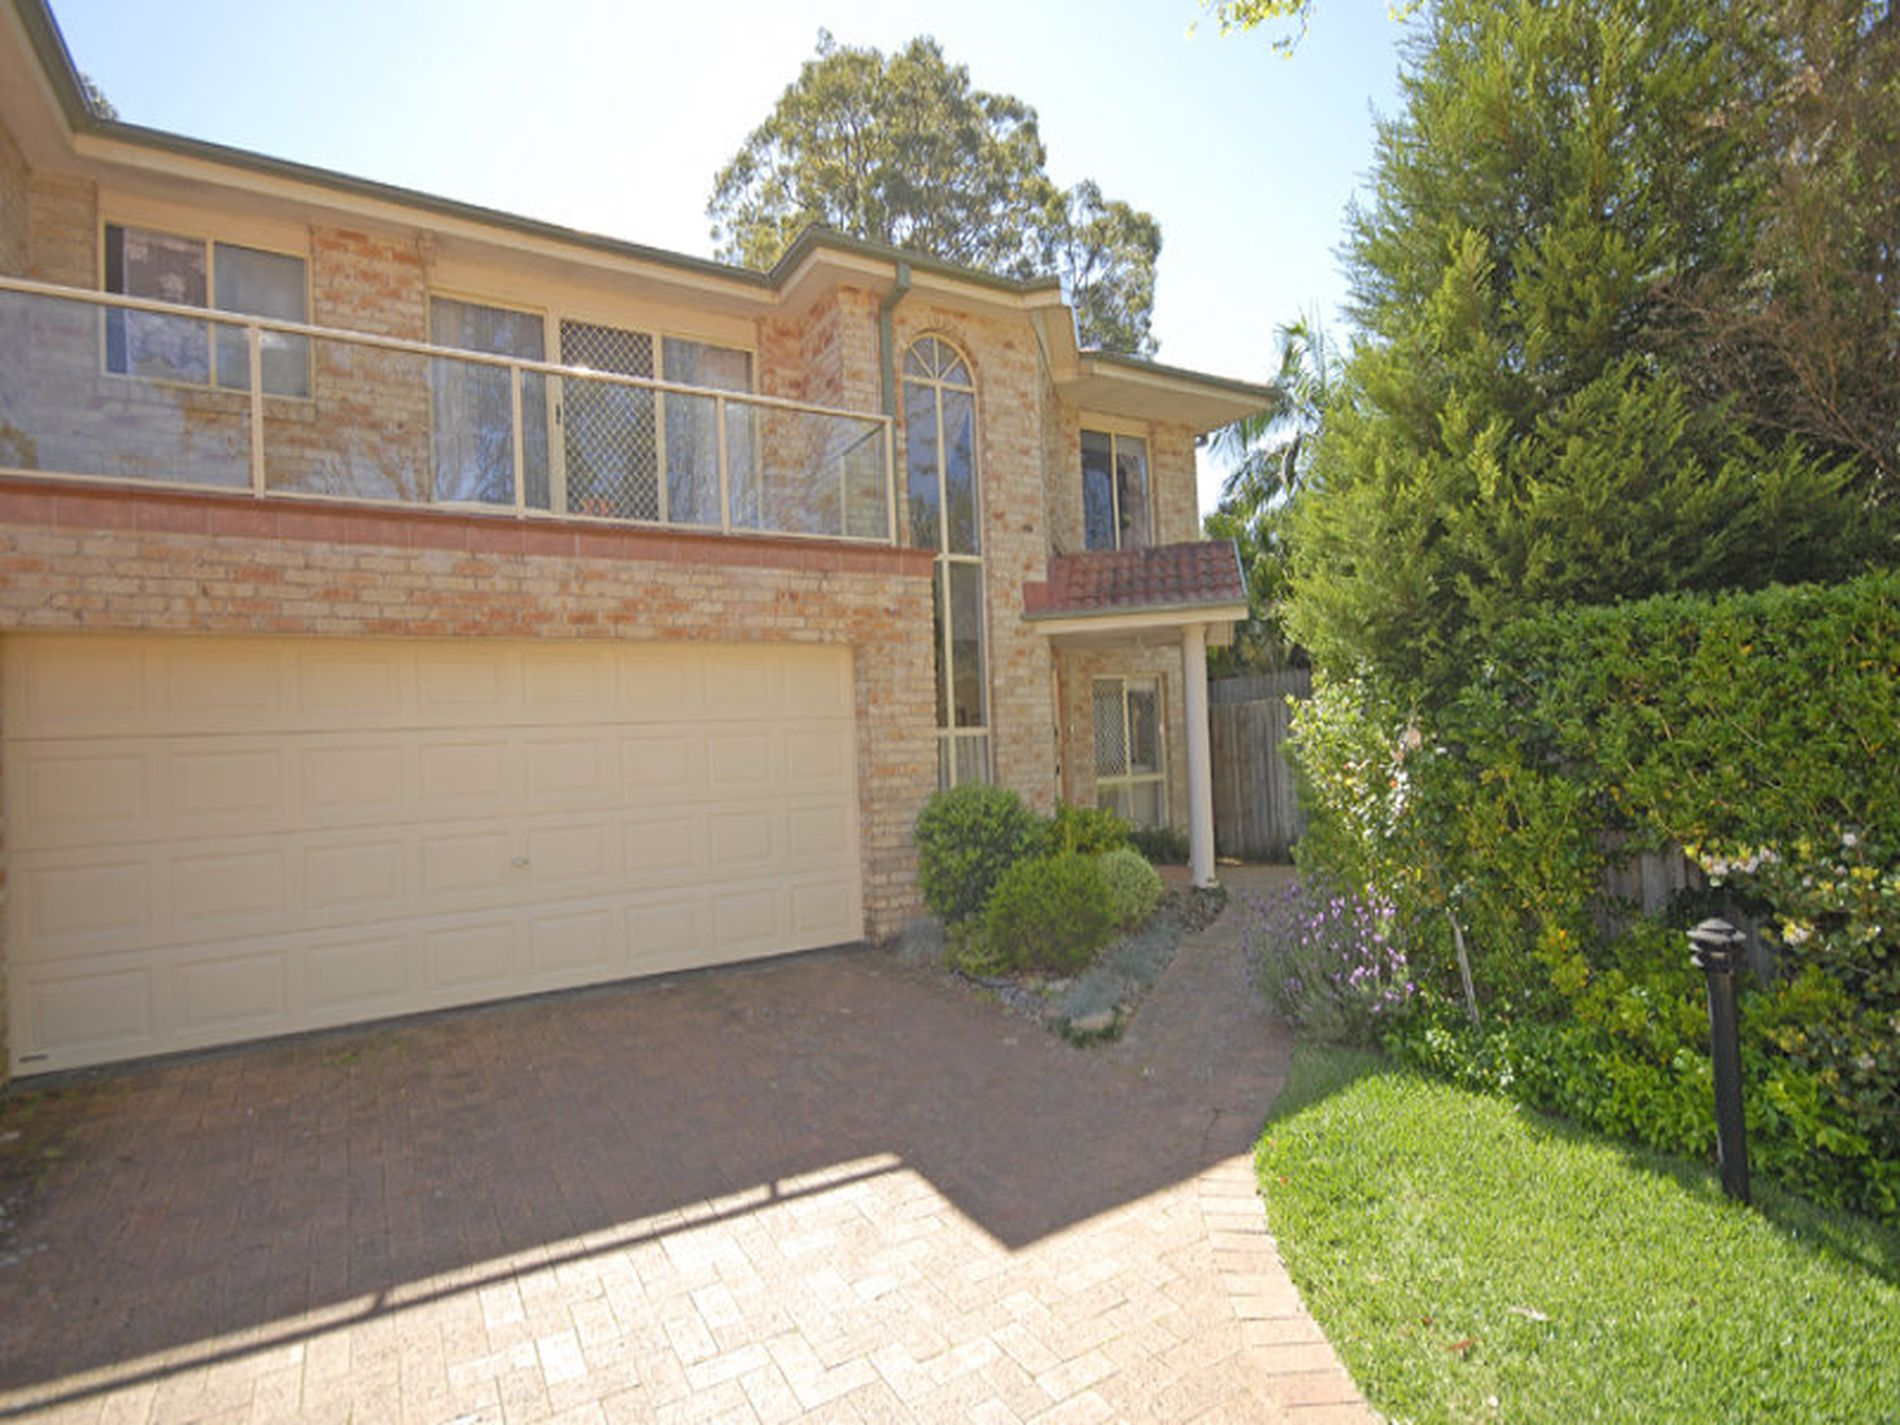 2 / 19-21 Pinner Close, North Epping